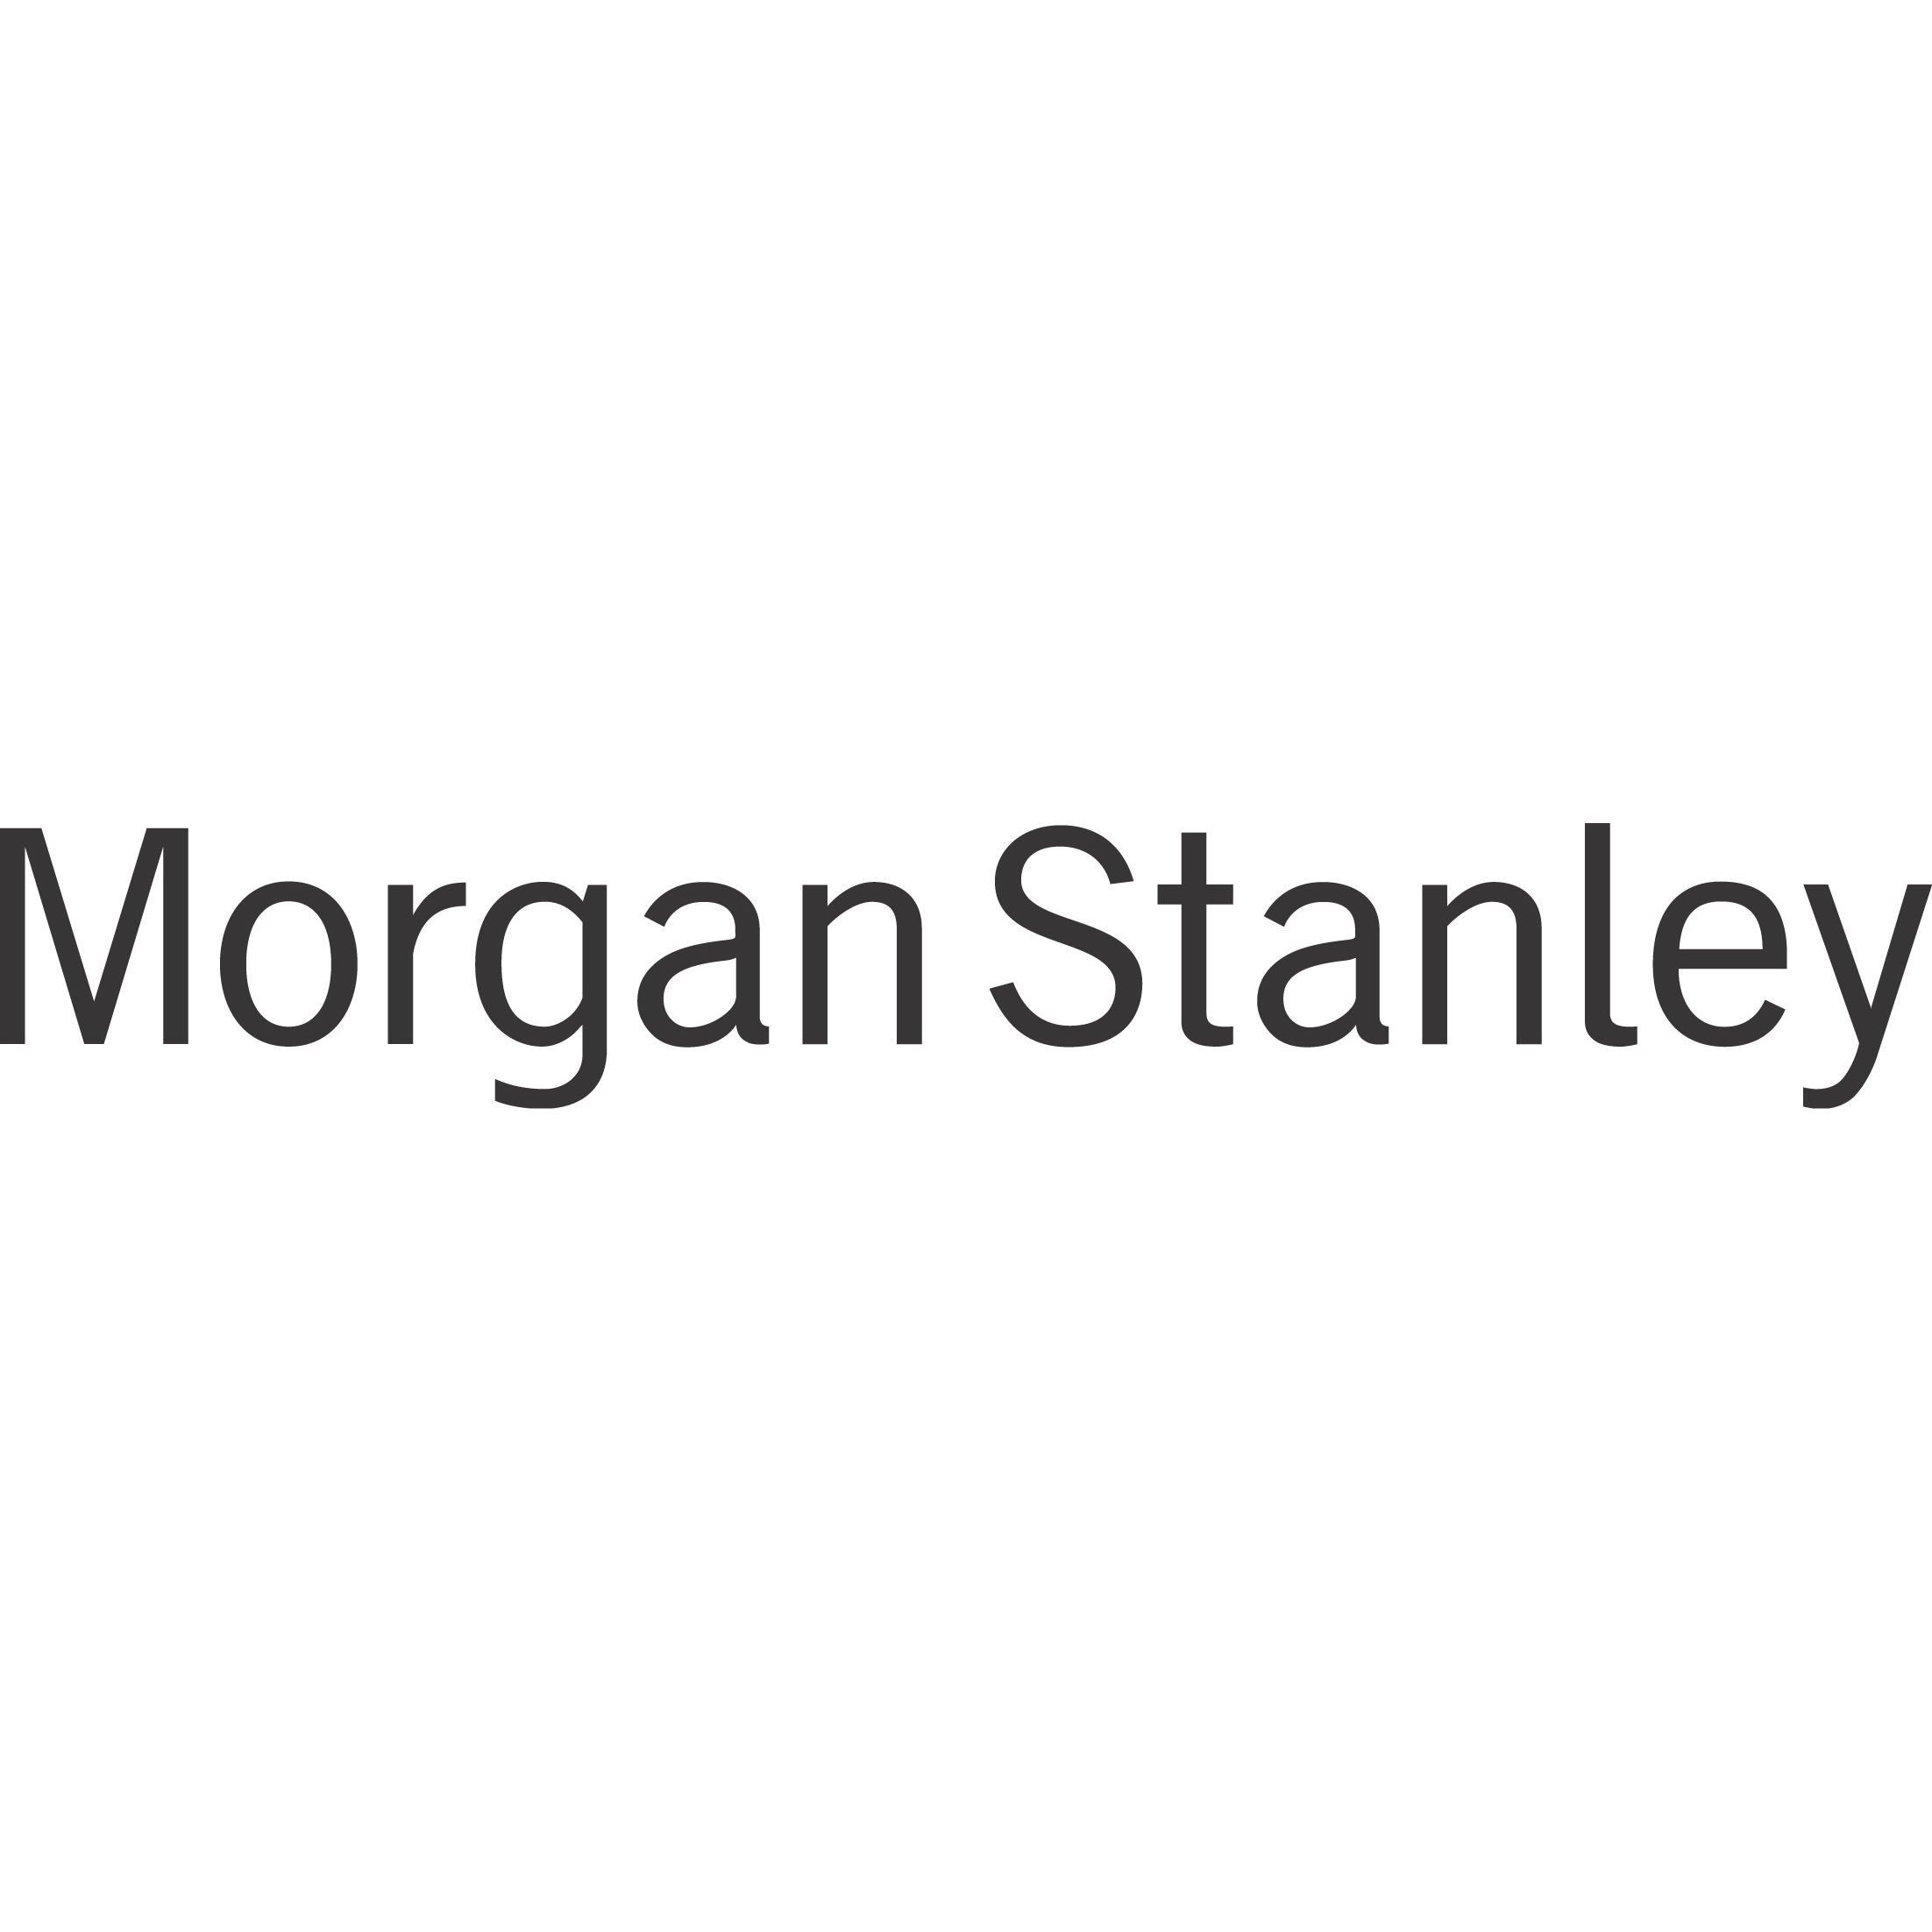 Elizabeth Console - Morgan Stanley | Financial Advisor in Naples,Florida